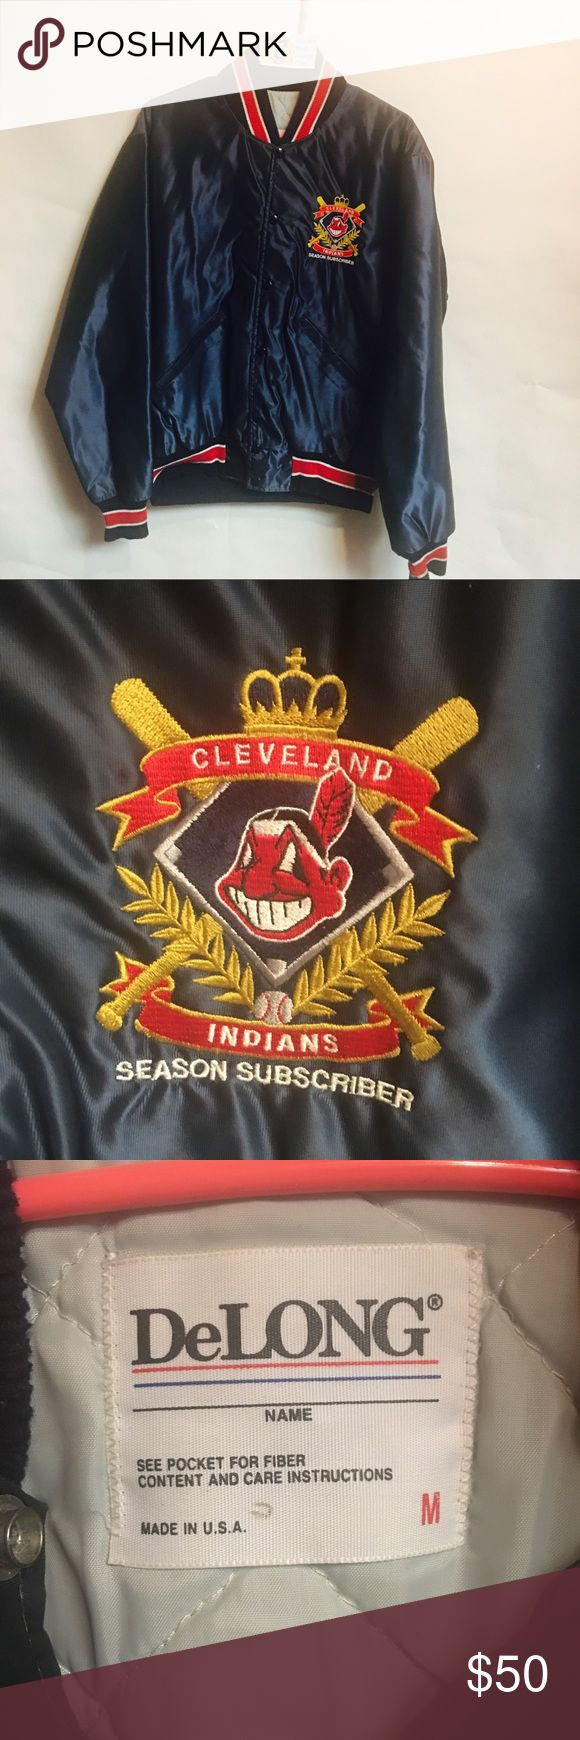 Vintage Cleveland Indians Satin Bomber Jacket Vintage DeLong Cleveland Indians Satin Button Up Bomber Jacket. Rare Jacket only given out to Indians Season Ticket Holders. This RARE jacket is a Men's Medium and is in excellent condition with no major flaws. Fits true to size Vintage Jackets & Coats Bomber & Varsity